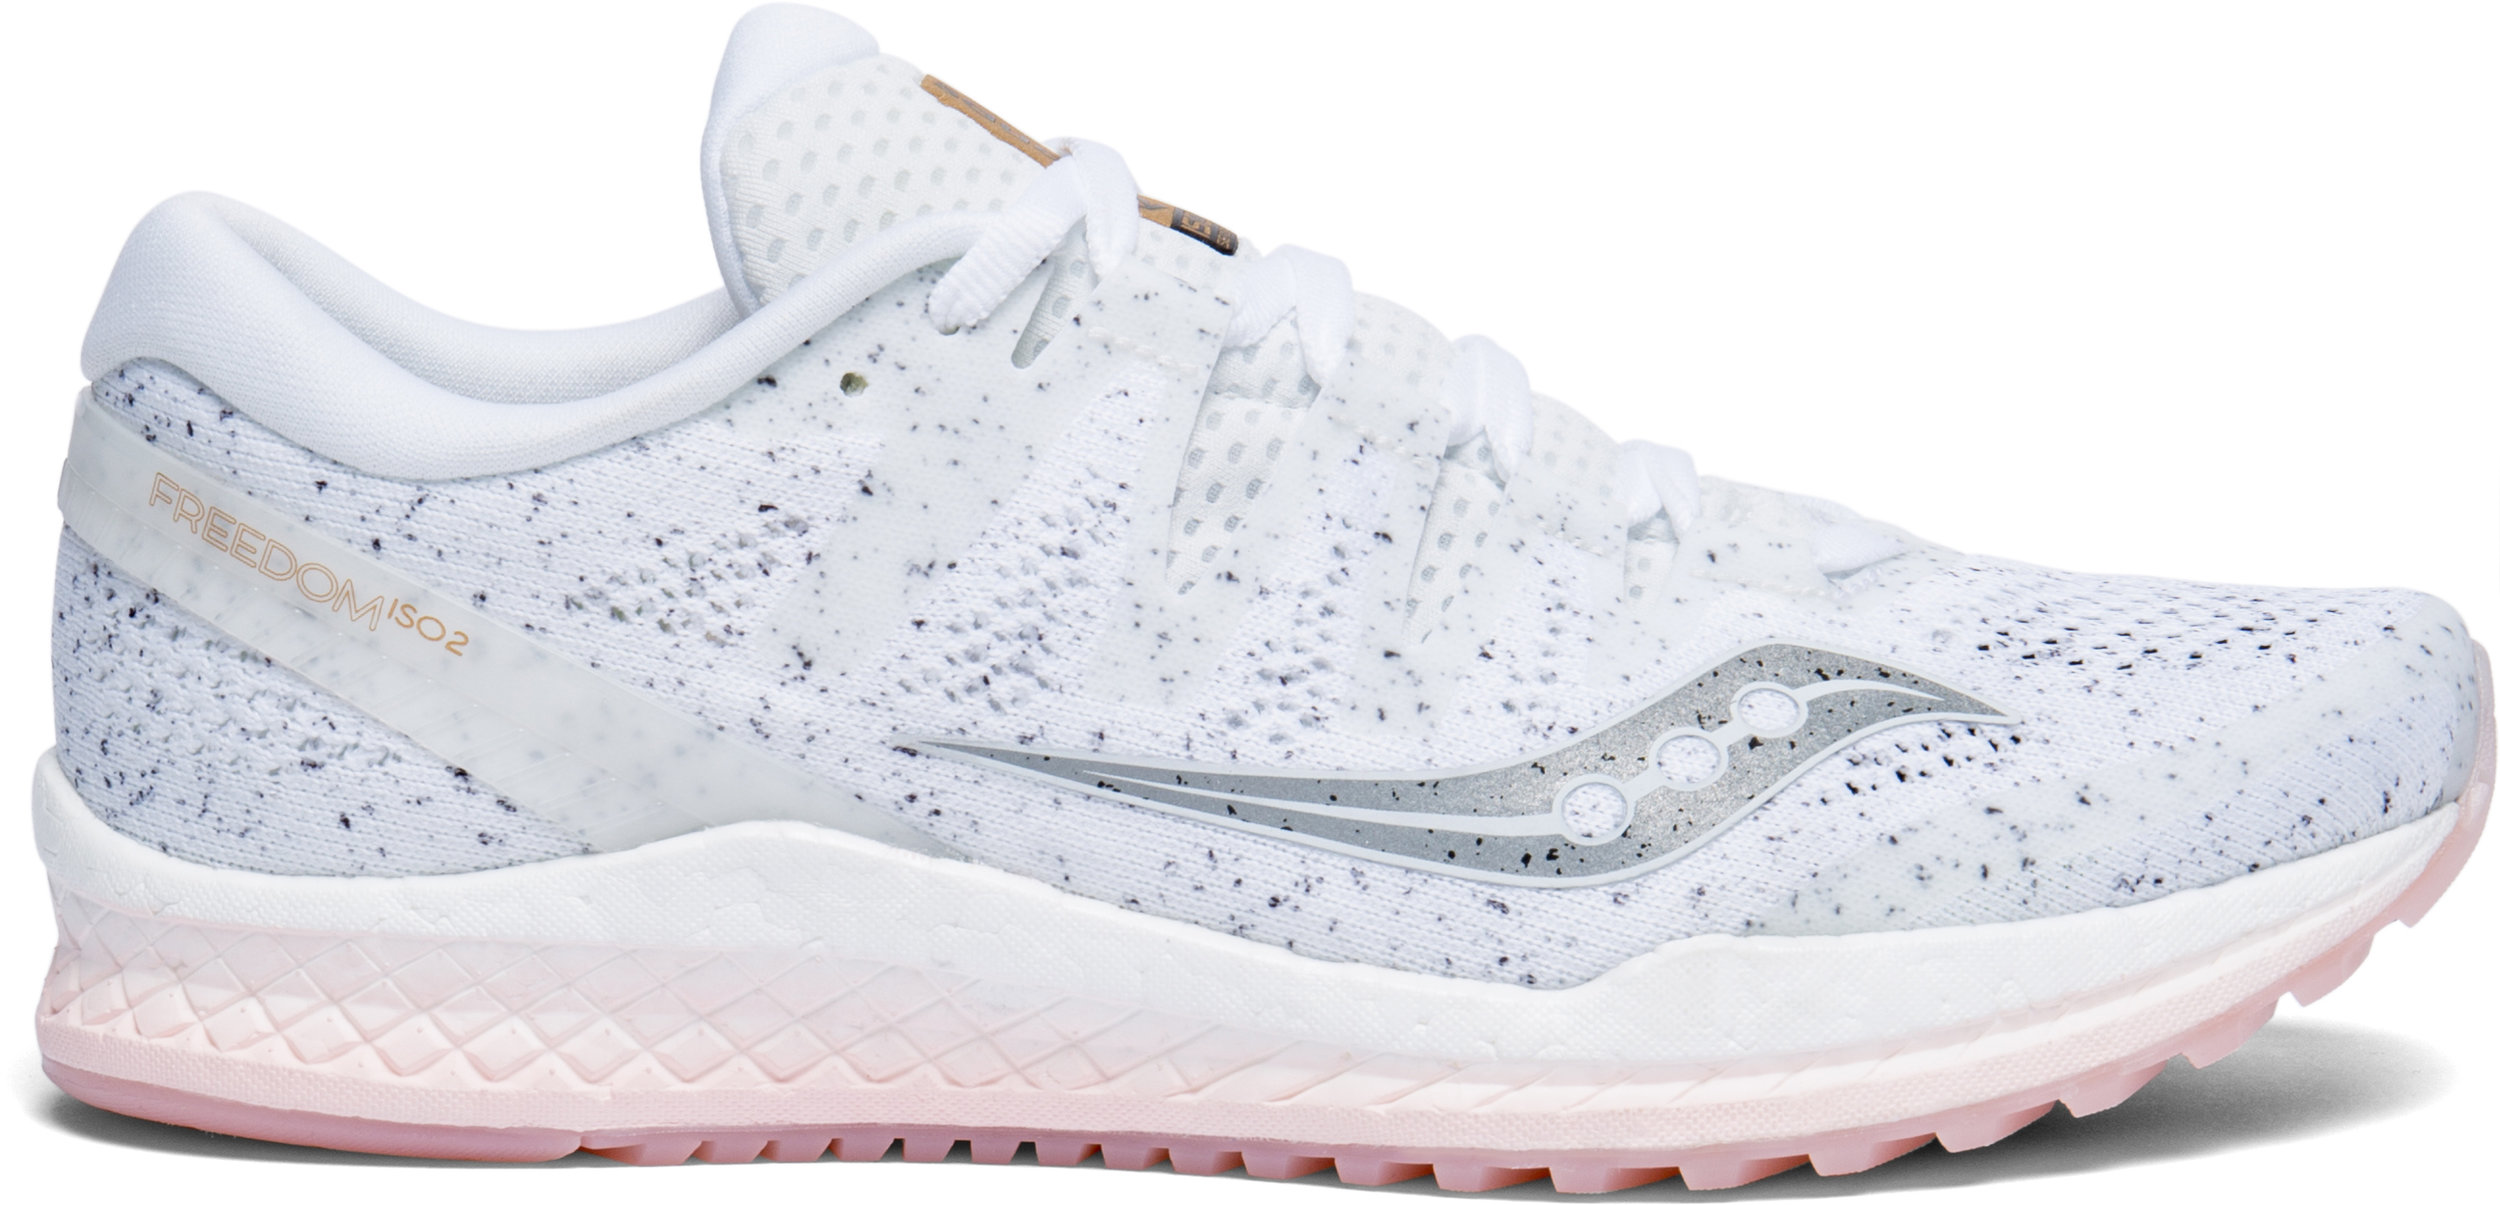 White on: The women's version of the Saucony Freedom